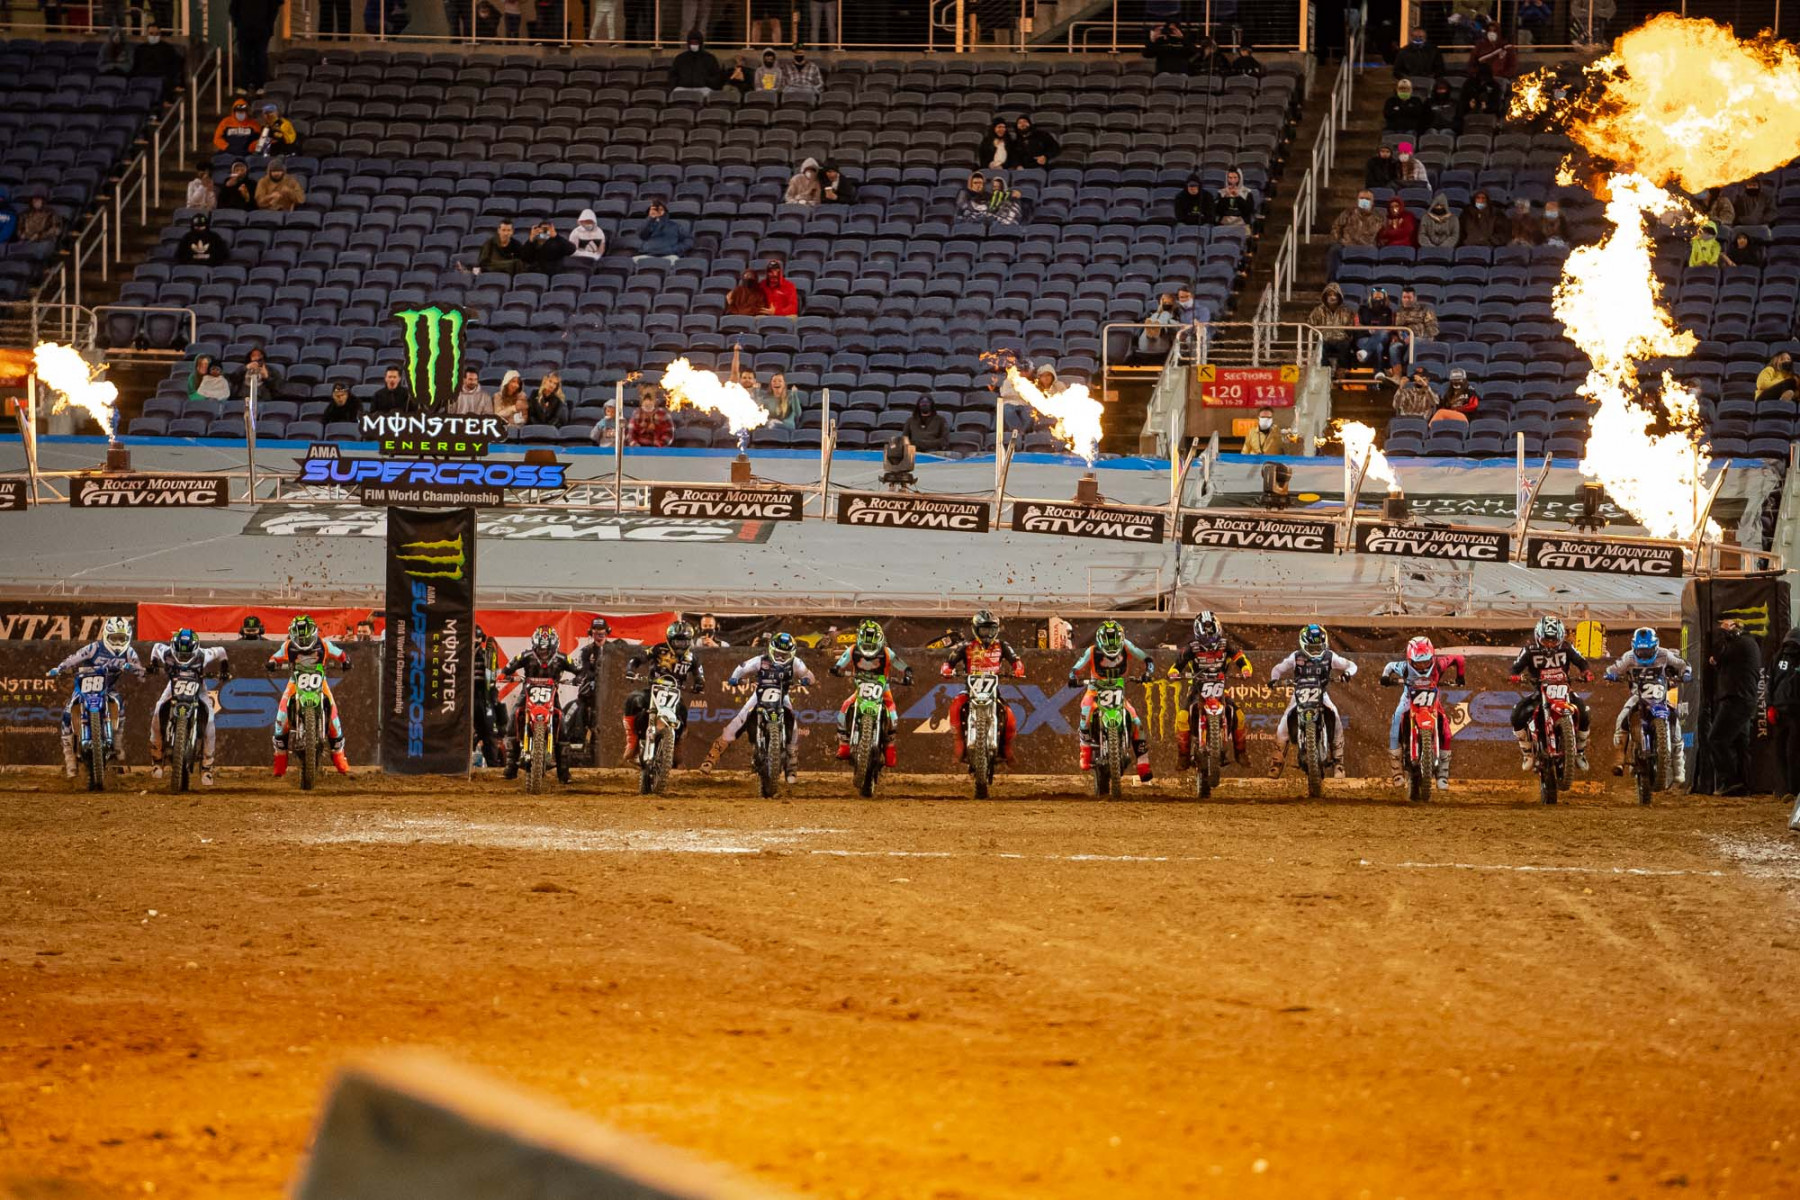 2021-ORLANDO-TWO-SUPERCROSS_KICKSTART_1550